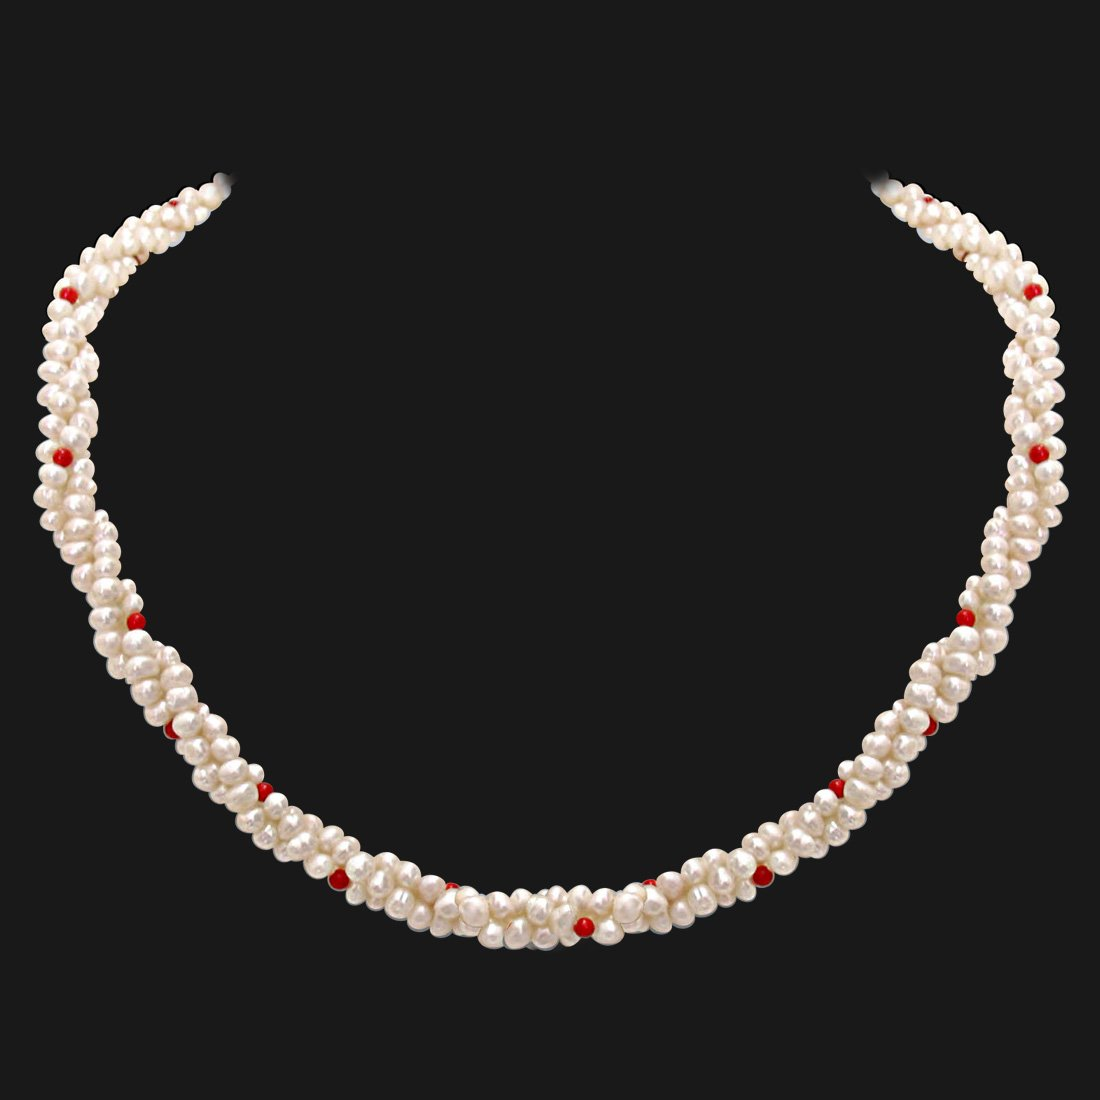 Coral Bead Beauty - 3 Line Twisted Real Pearl & Red Coral Beads Necklace for Women (SN303)